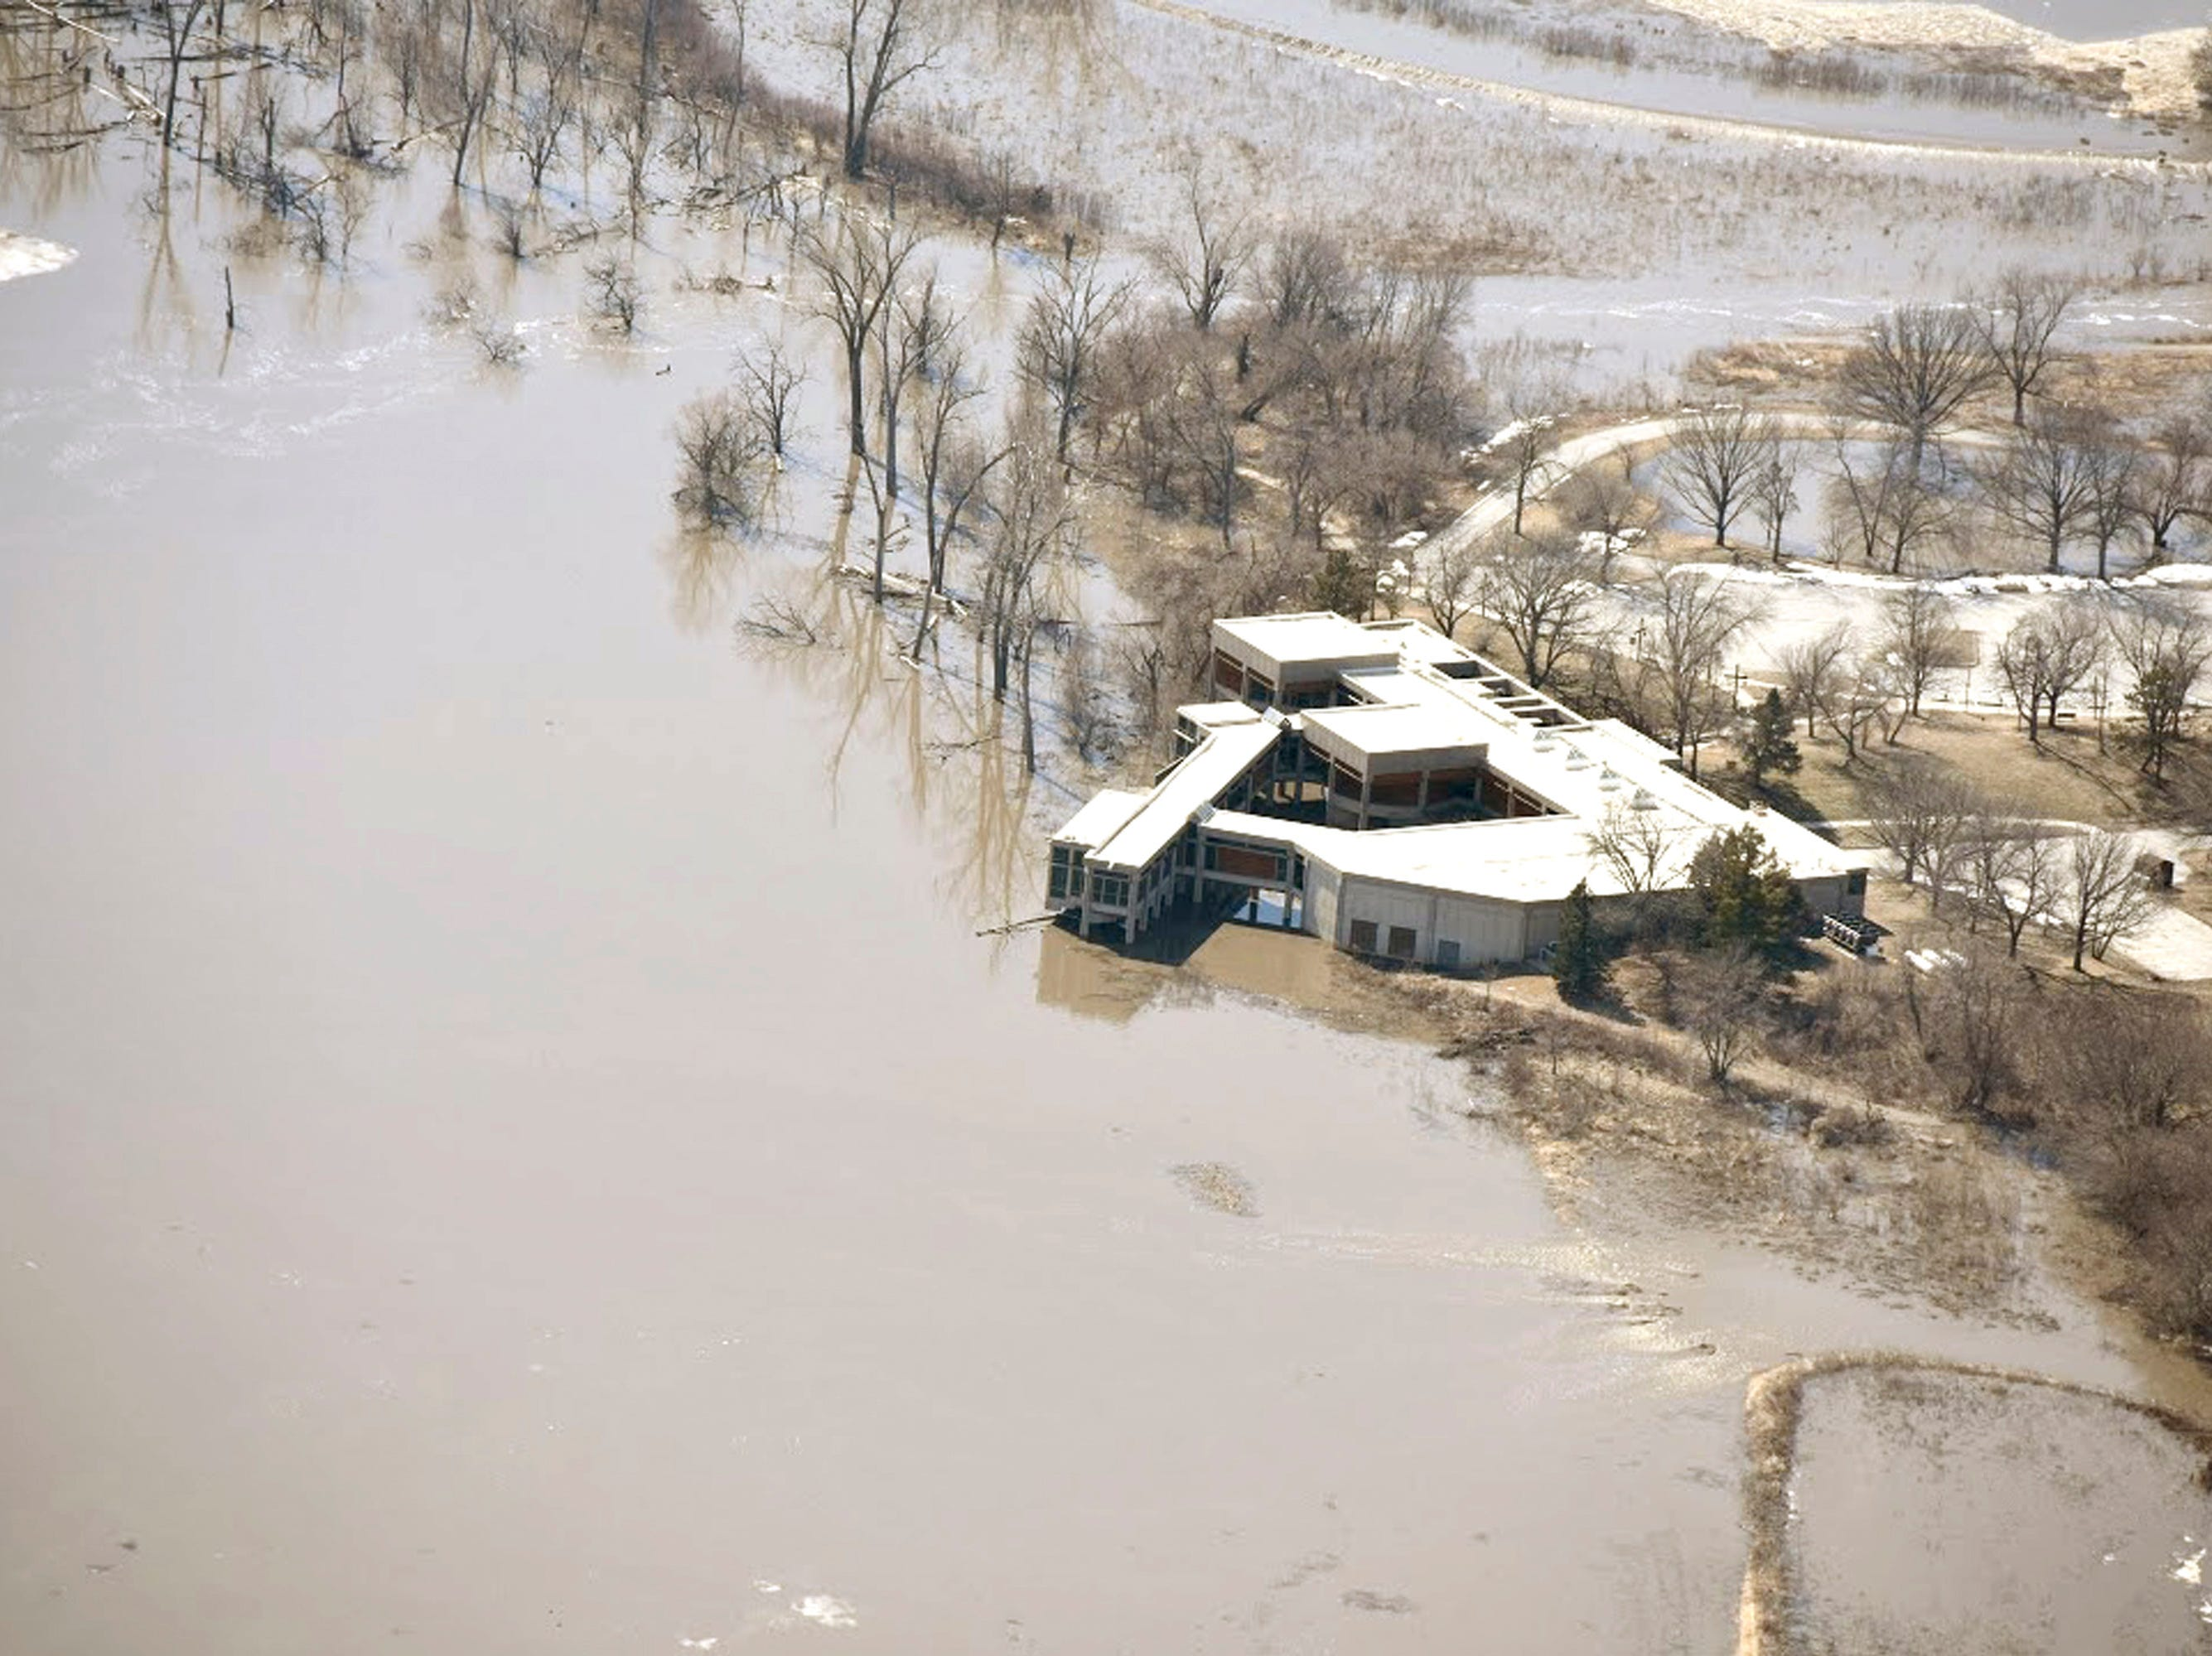 In this Monday, March 18, 2019, photo taken by the South Dakota Civil Air Patrol and provided by the Iowa Department of Homeland Security and Emergency Management, shows flooding along the Missouri River in California Junction, Iowa.